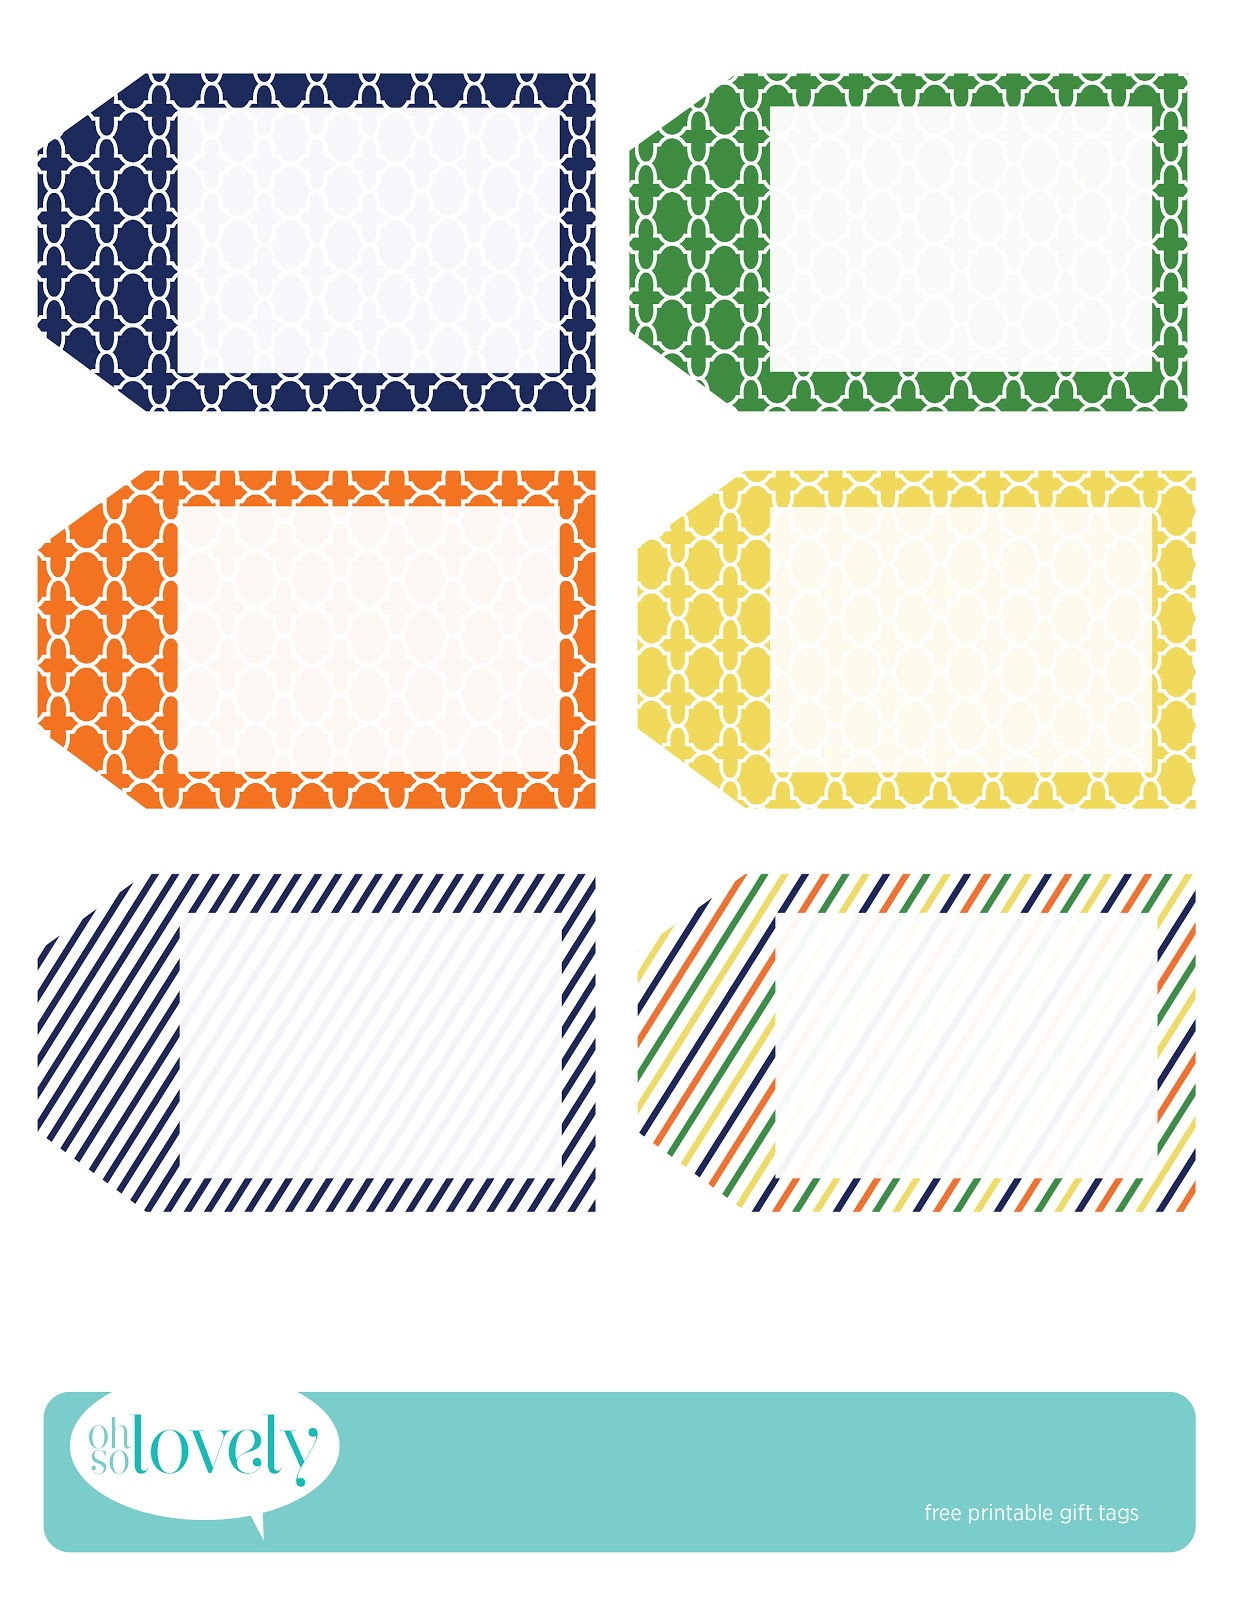 009 Oh So Lovely Free Gift Tags2 Template Ideas Printable Tag - Free Printable Favor Tags